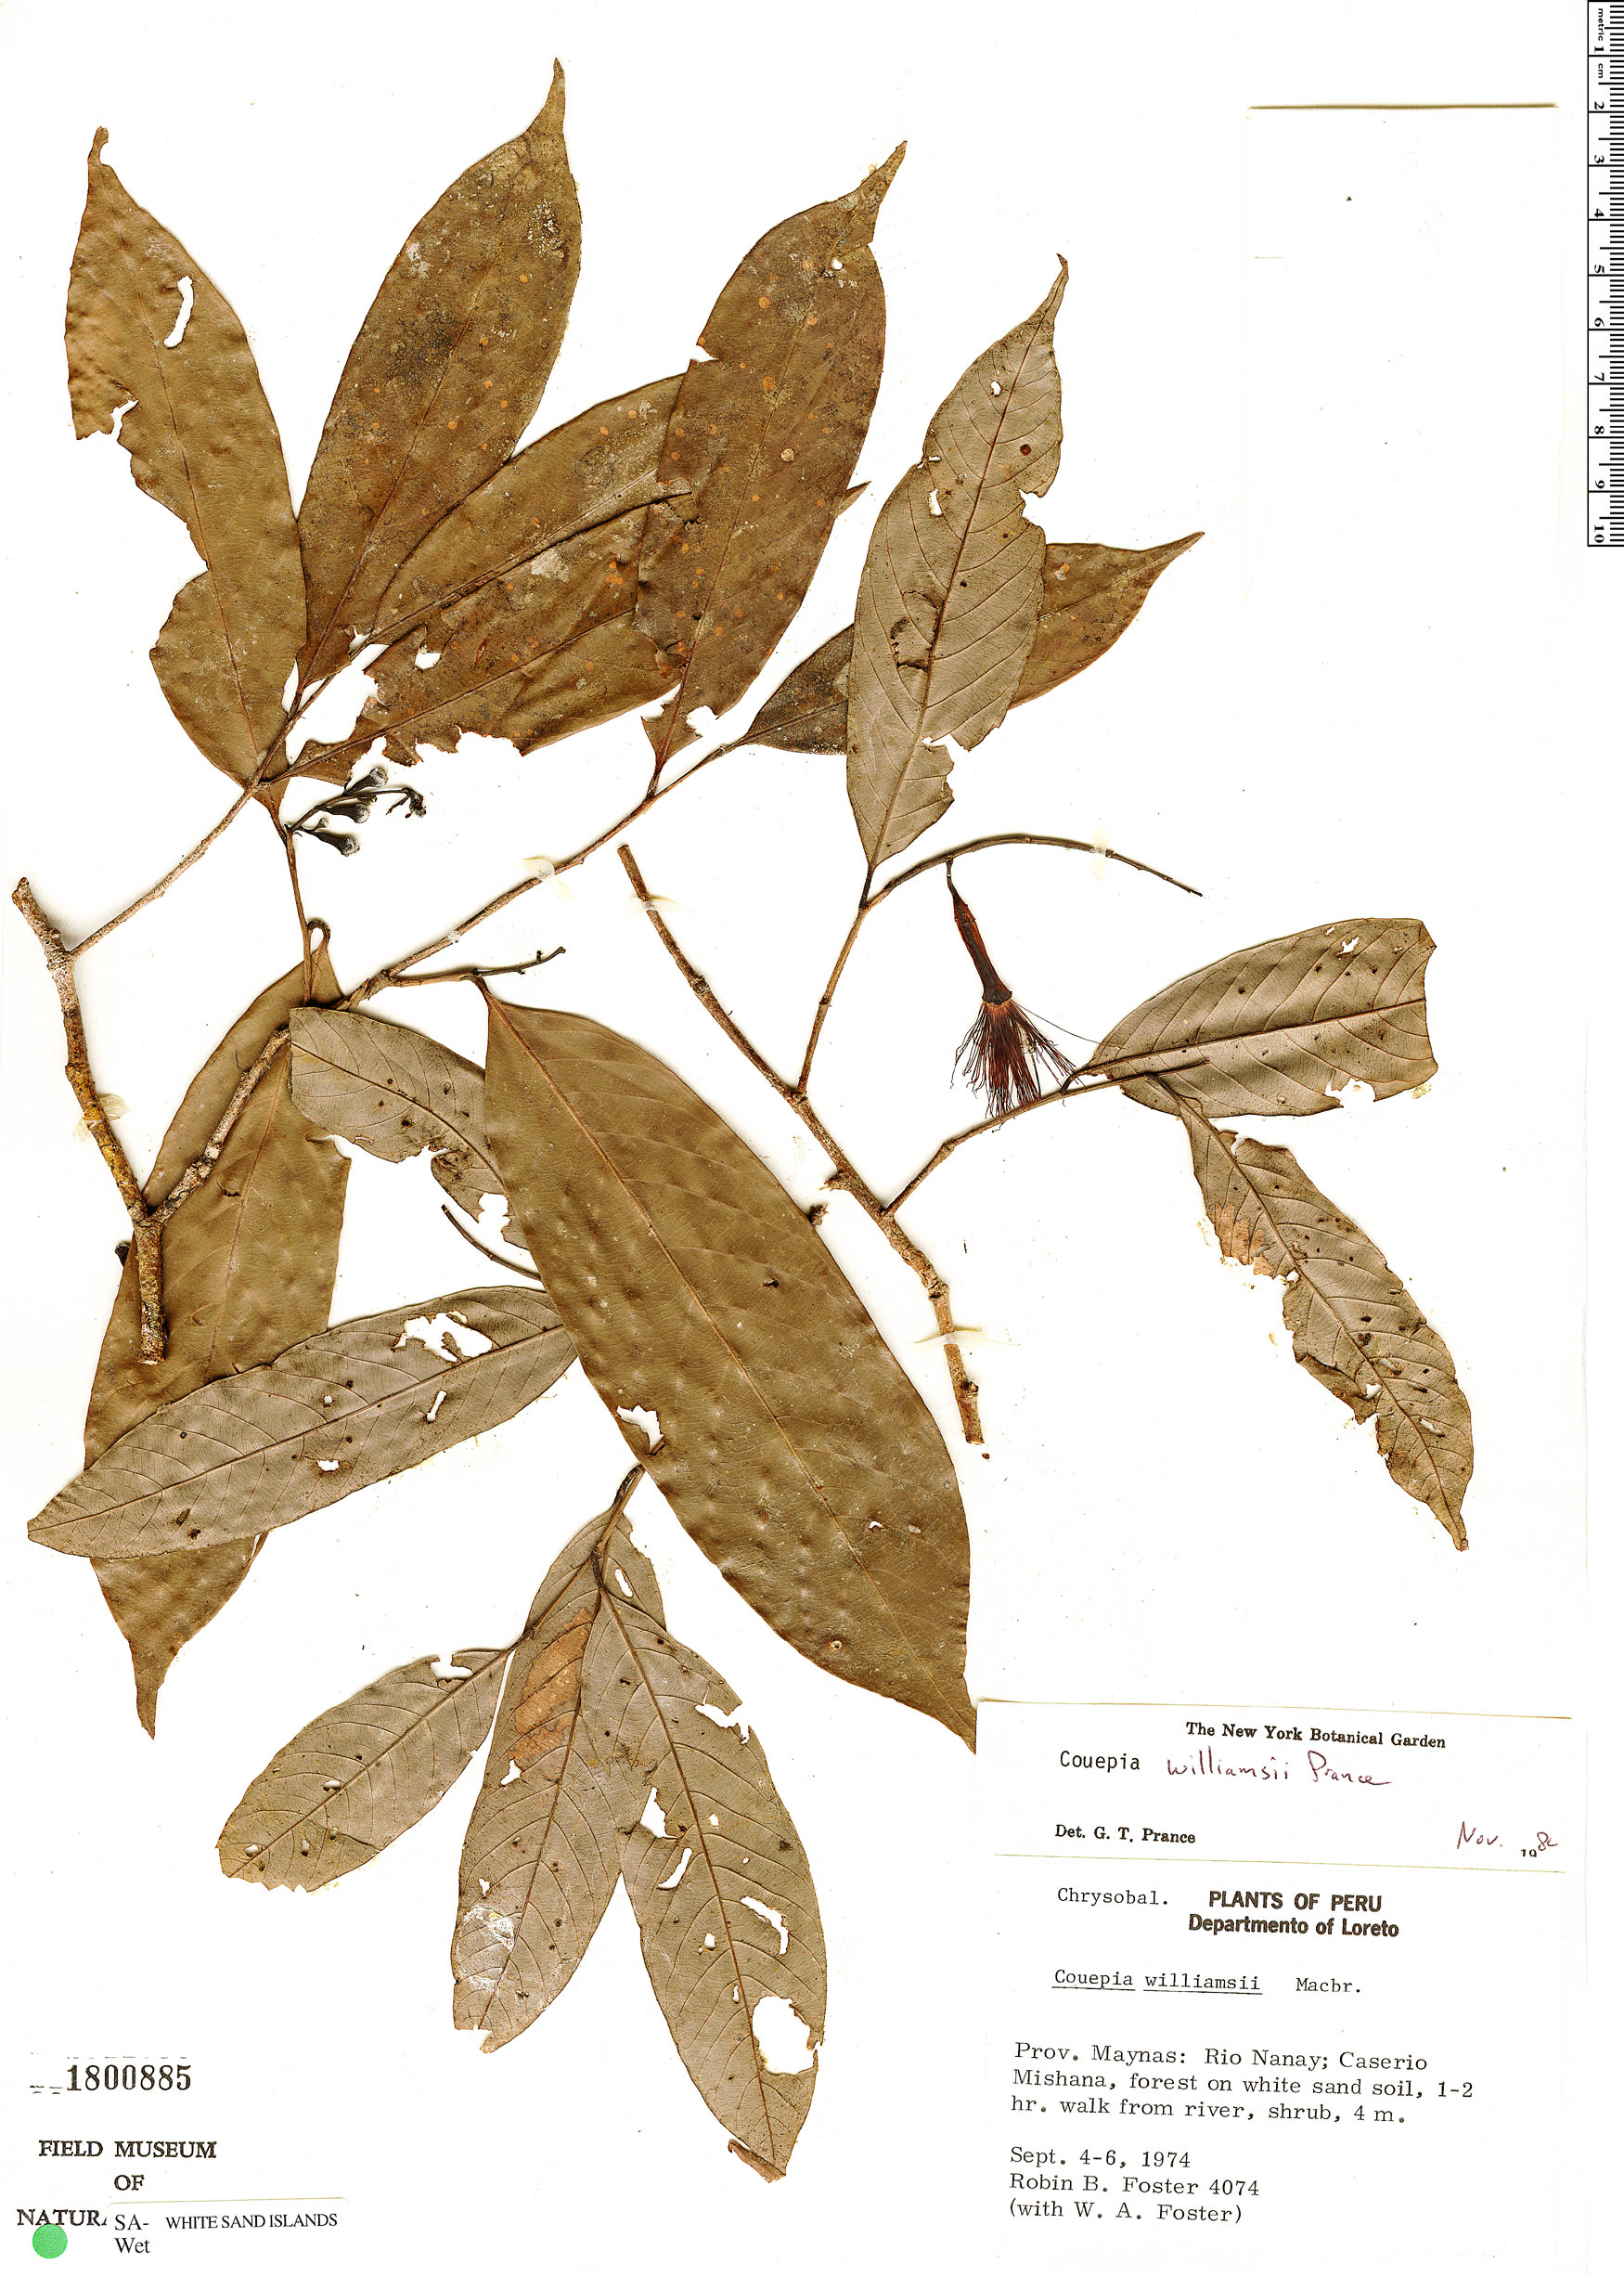 Specimen: Couepia williamsii